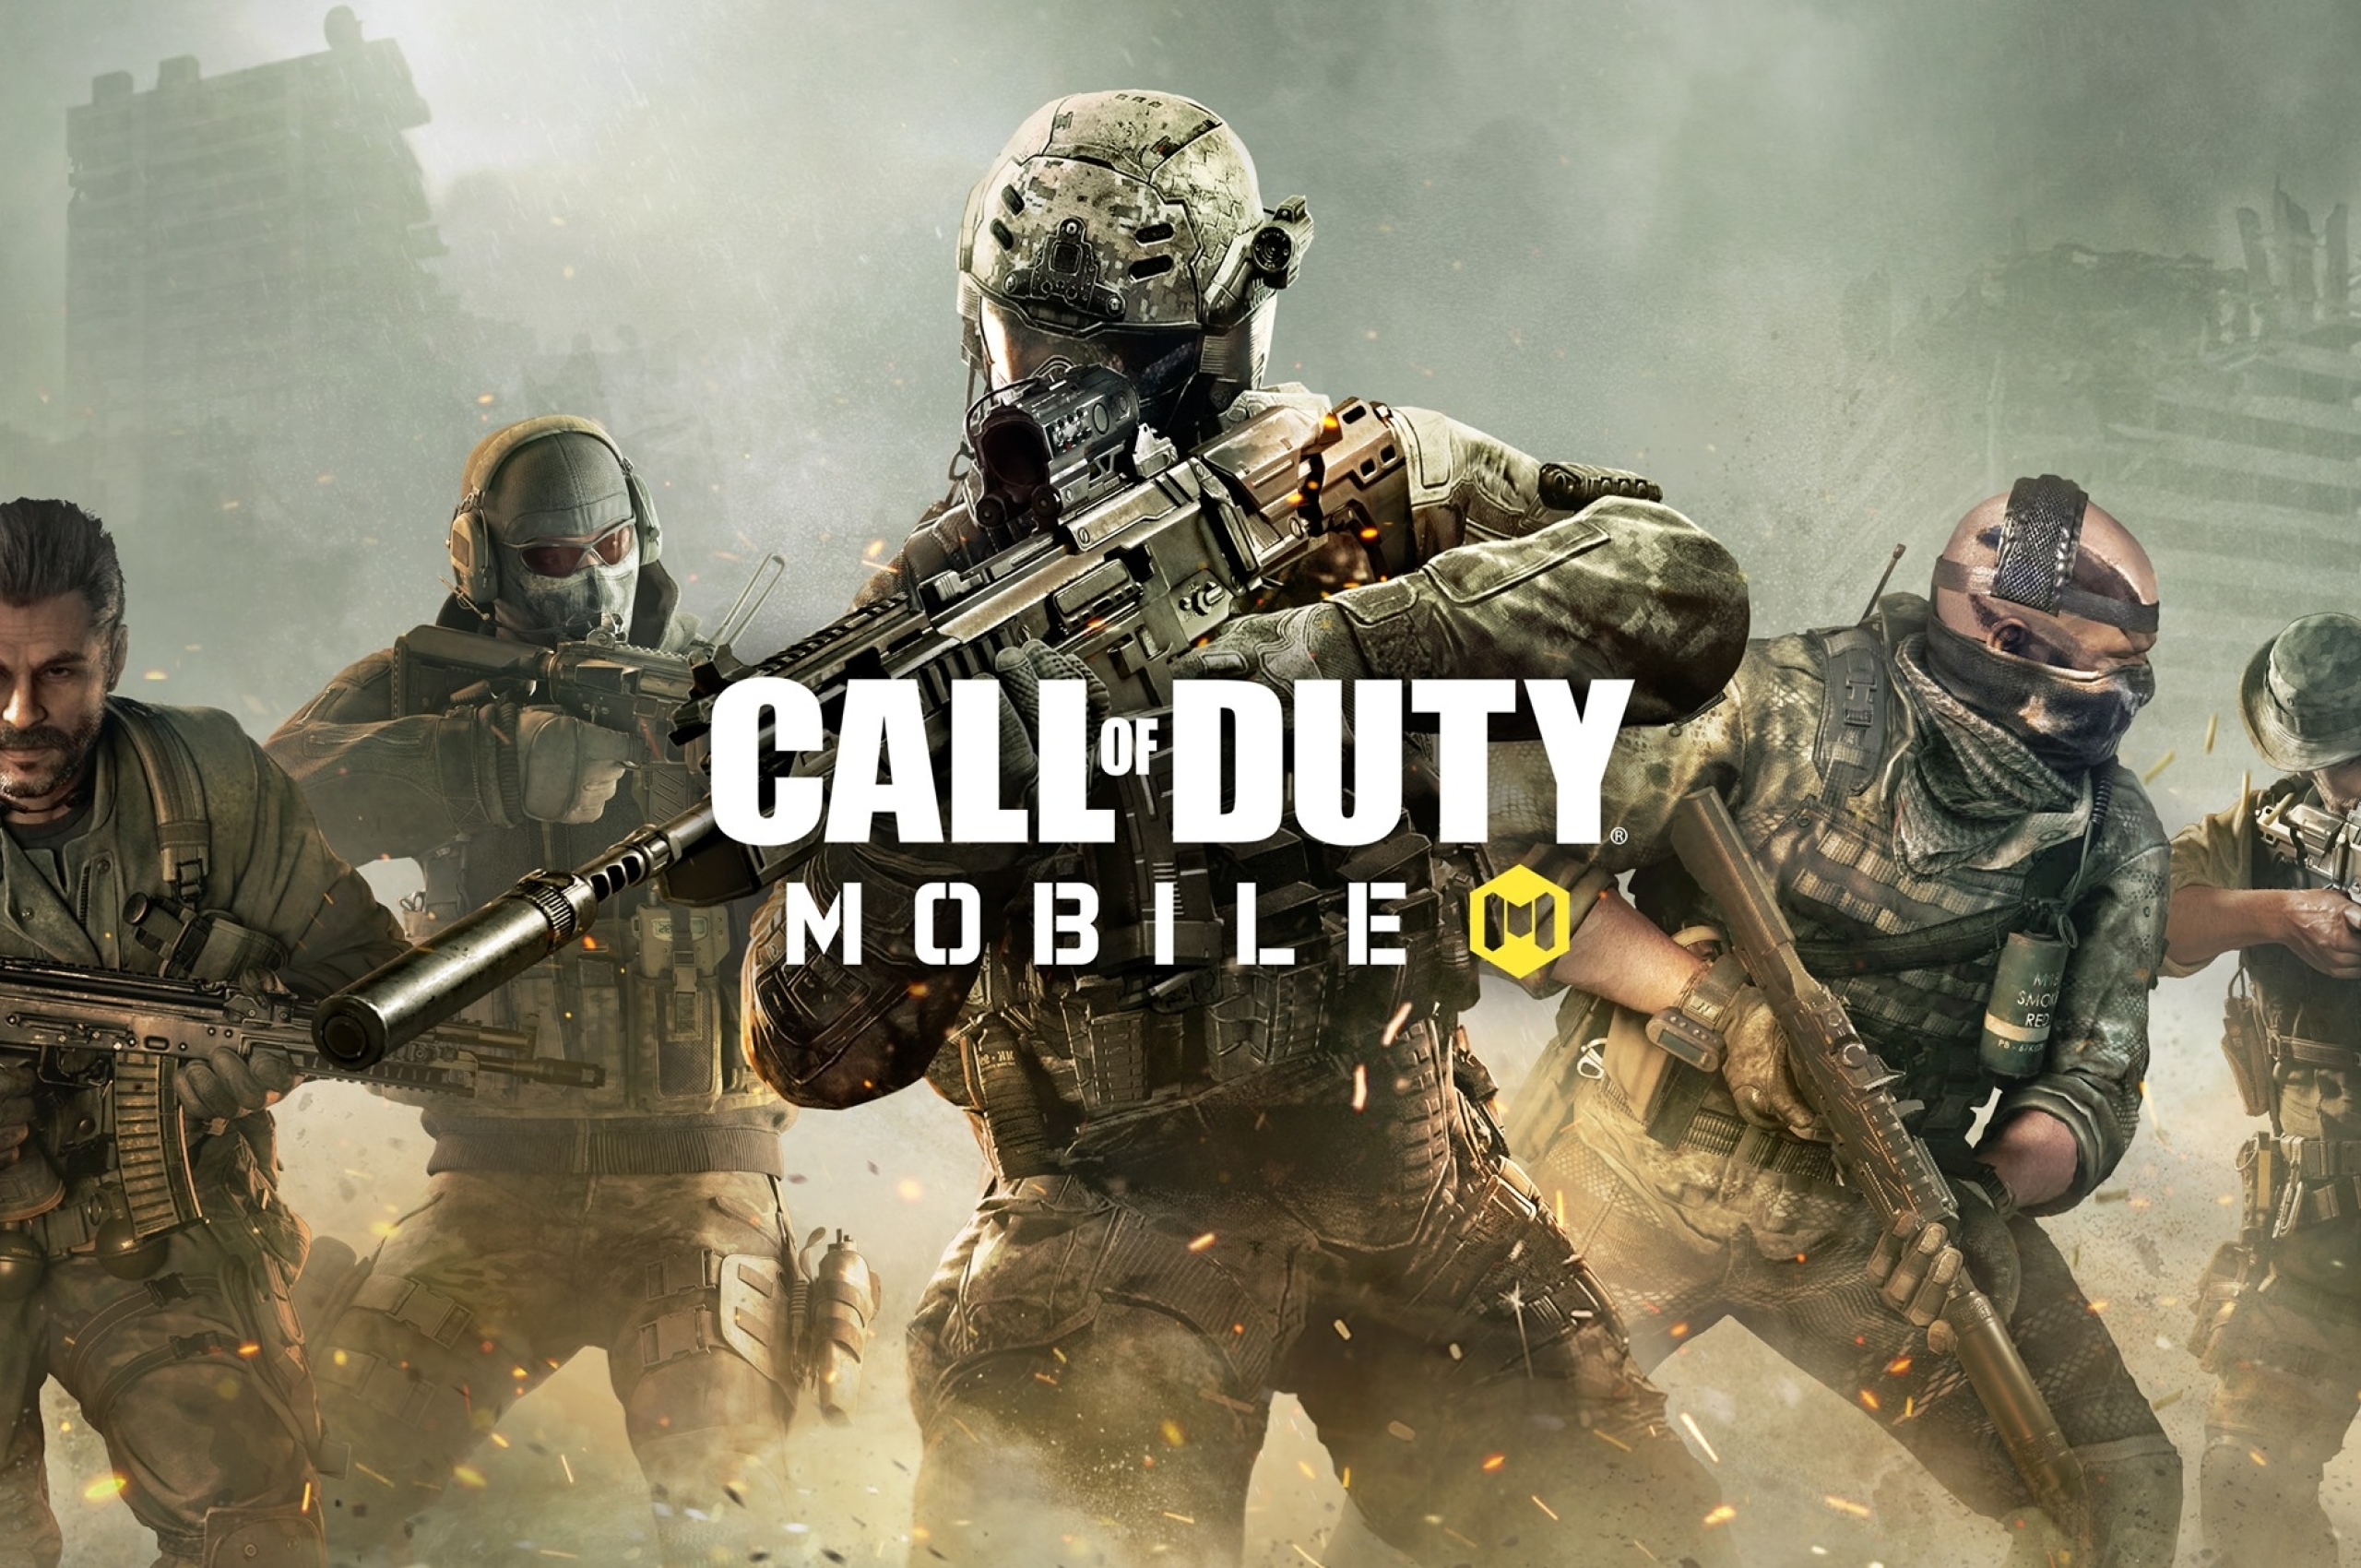 2560x1700 Call Of Duty Mobile Game Chromebook Pixel Wallpaper Hd